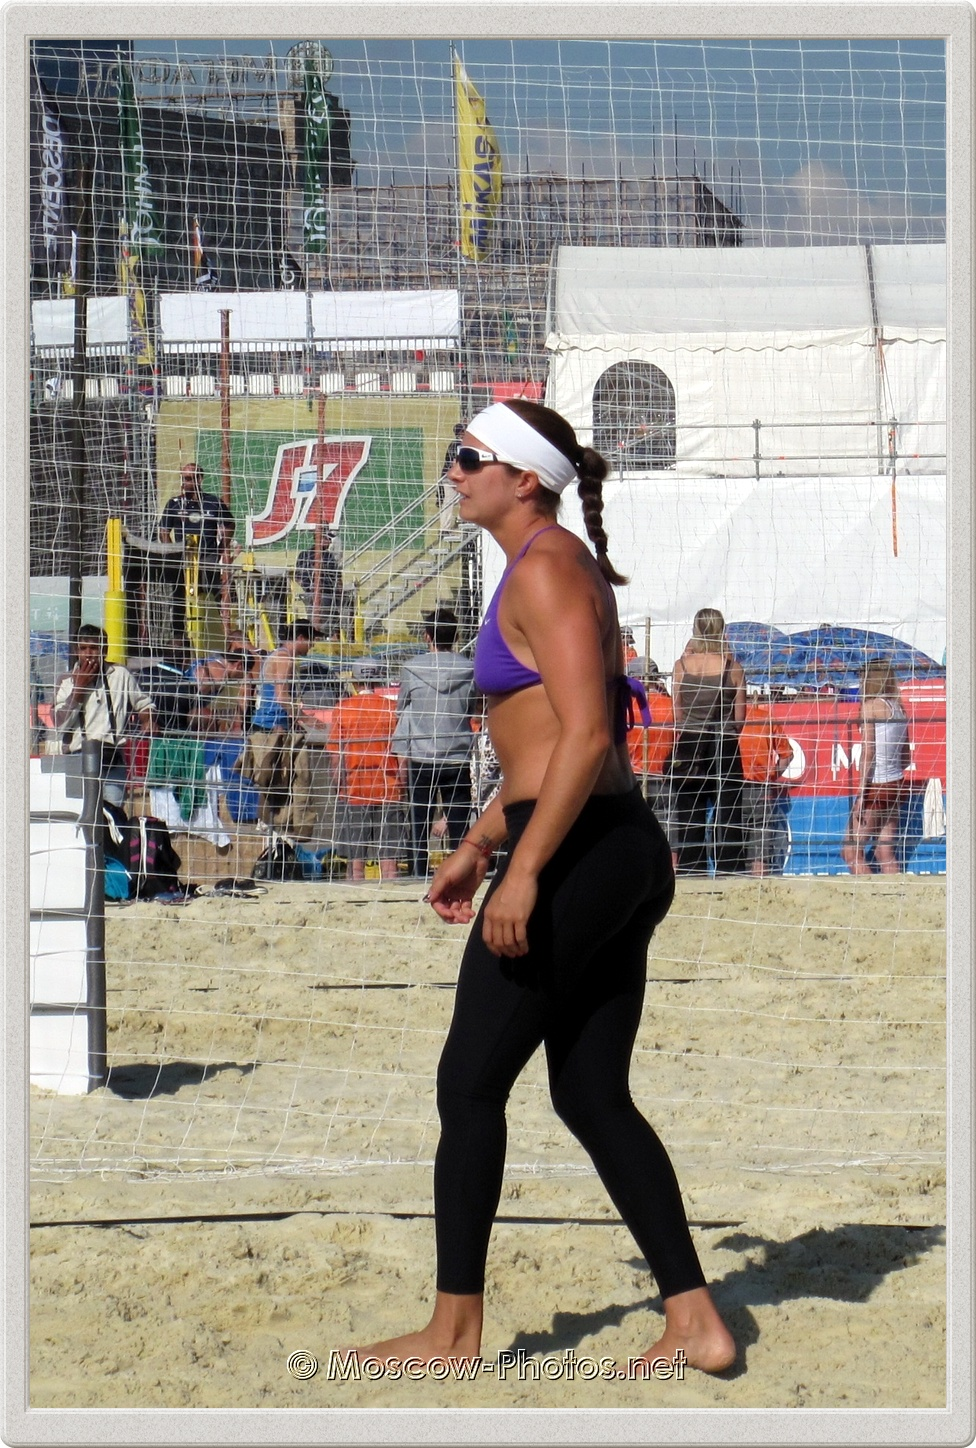 Beach Volleyball Player Misty May-Treanor